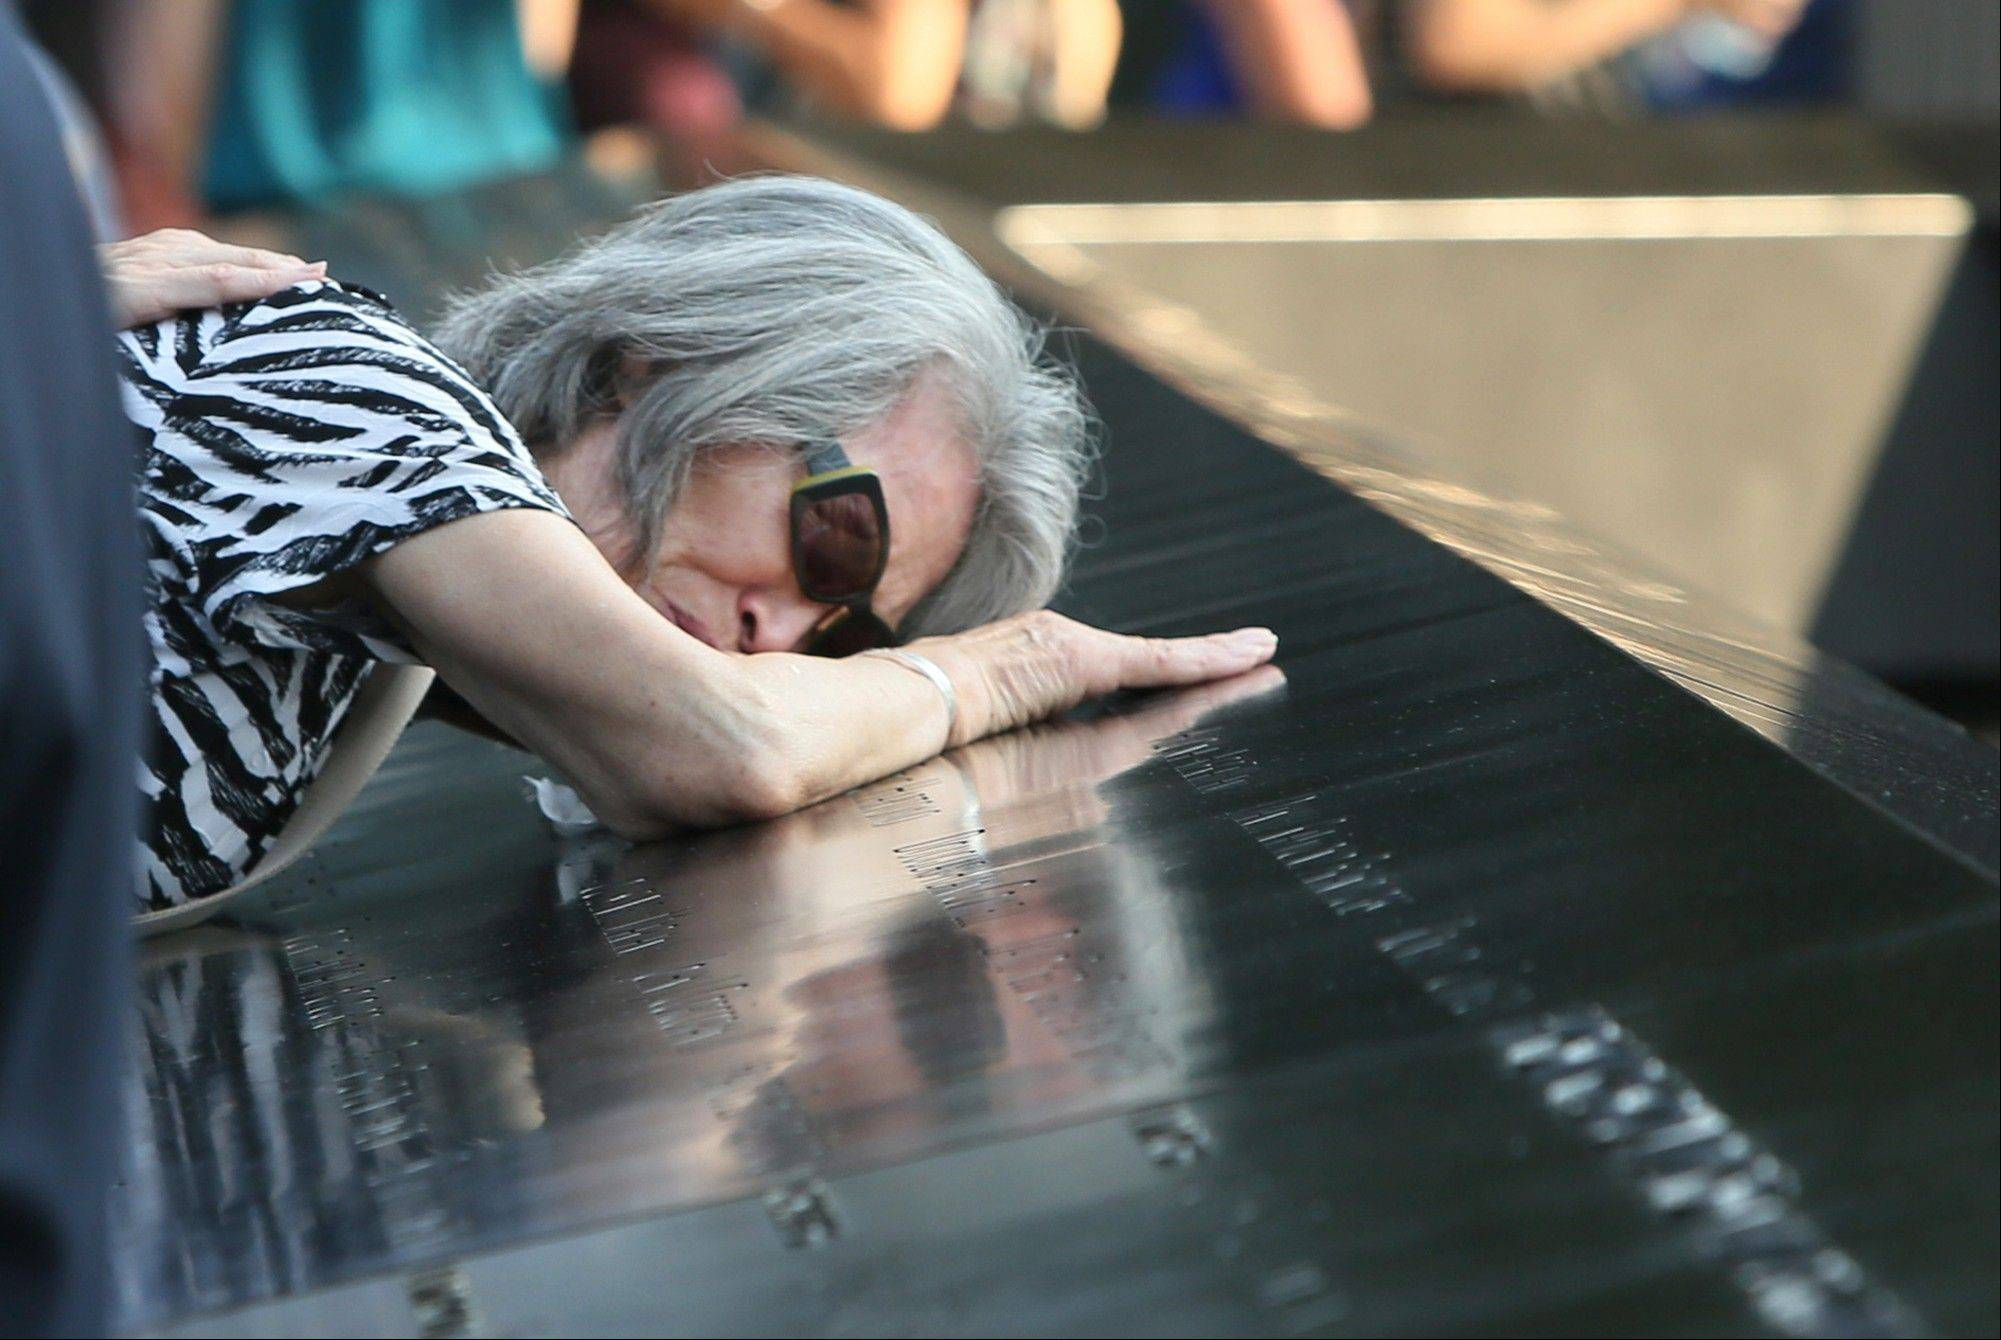 Mija Quigley, of Princeton Junction, N.J., embraces the name of her son, Patrick Quigley, during ceremonies marking the 12th anniversary of the 9/11 attacks on the World Trade Center in New York, Wednesday, Sept. 11, 2013. Patrick Quigley died aboard Flight 175 when it crashed into the south tower on 9/11.